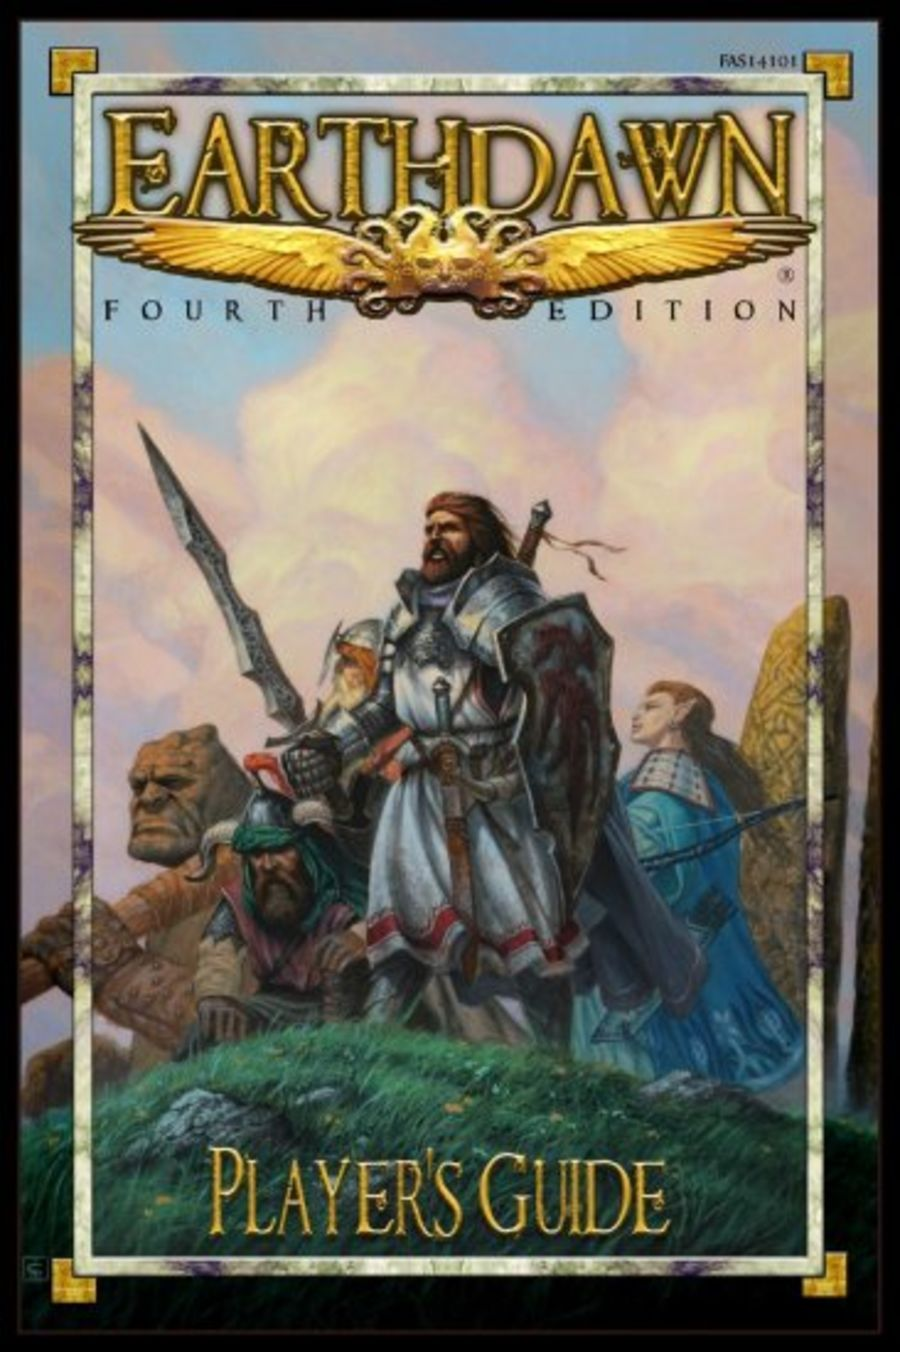 Earthdawn Player's Guide 4th Ed